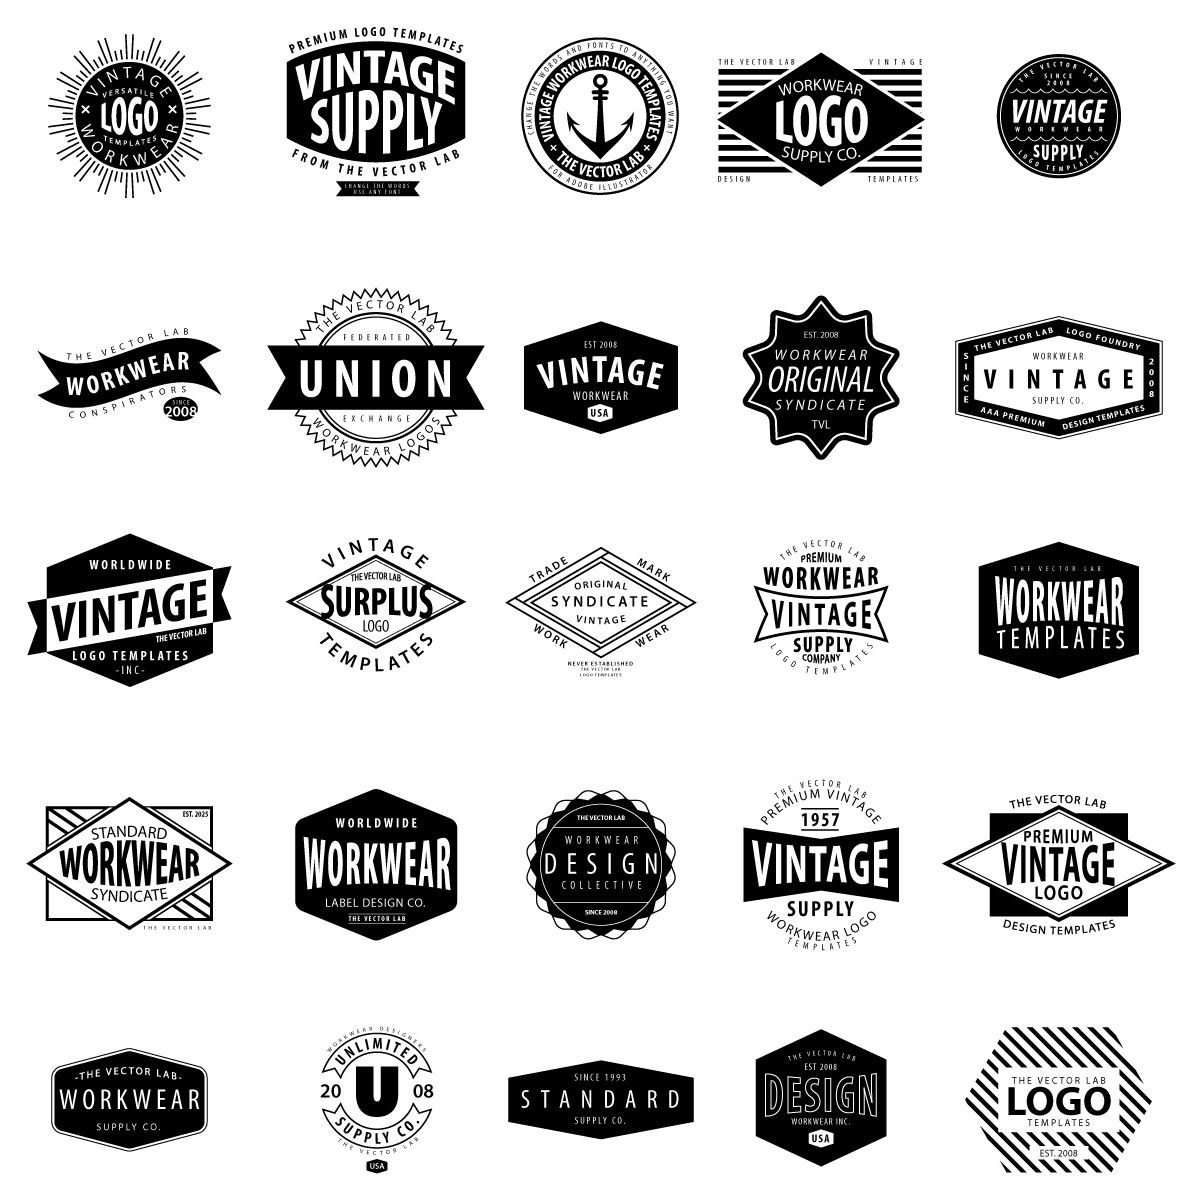 Vintage Logo Templates for Adobe Illustrator | LOGOS | Pinterest